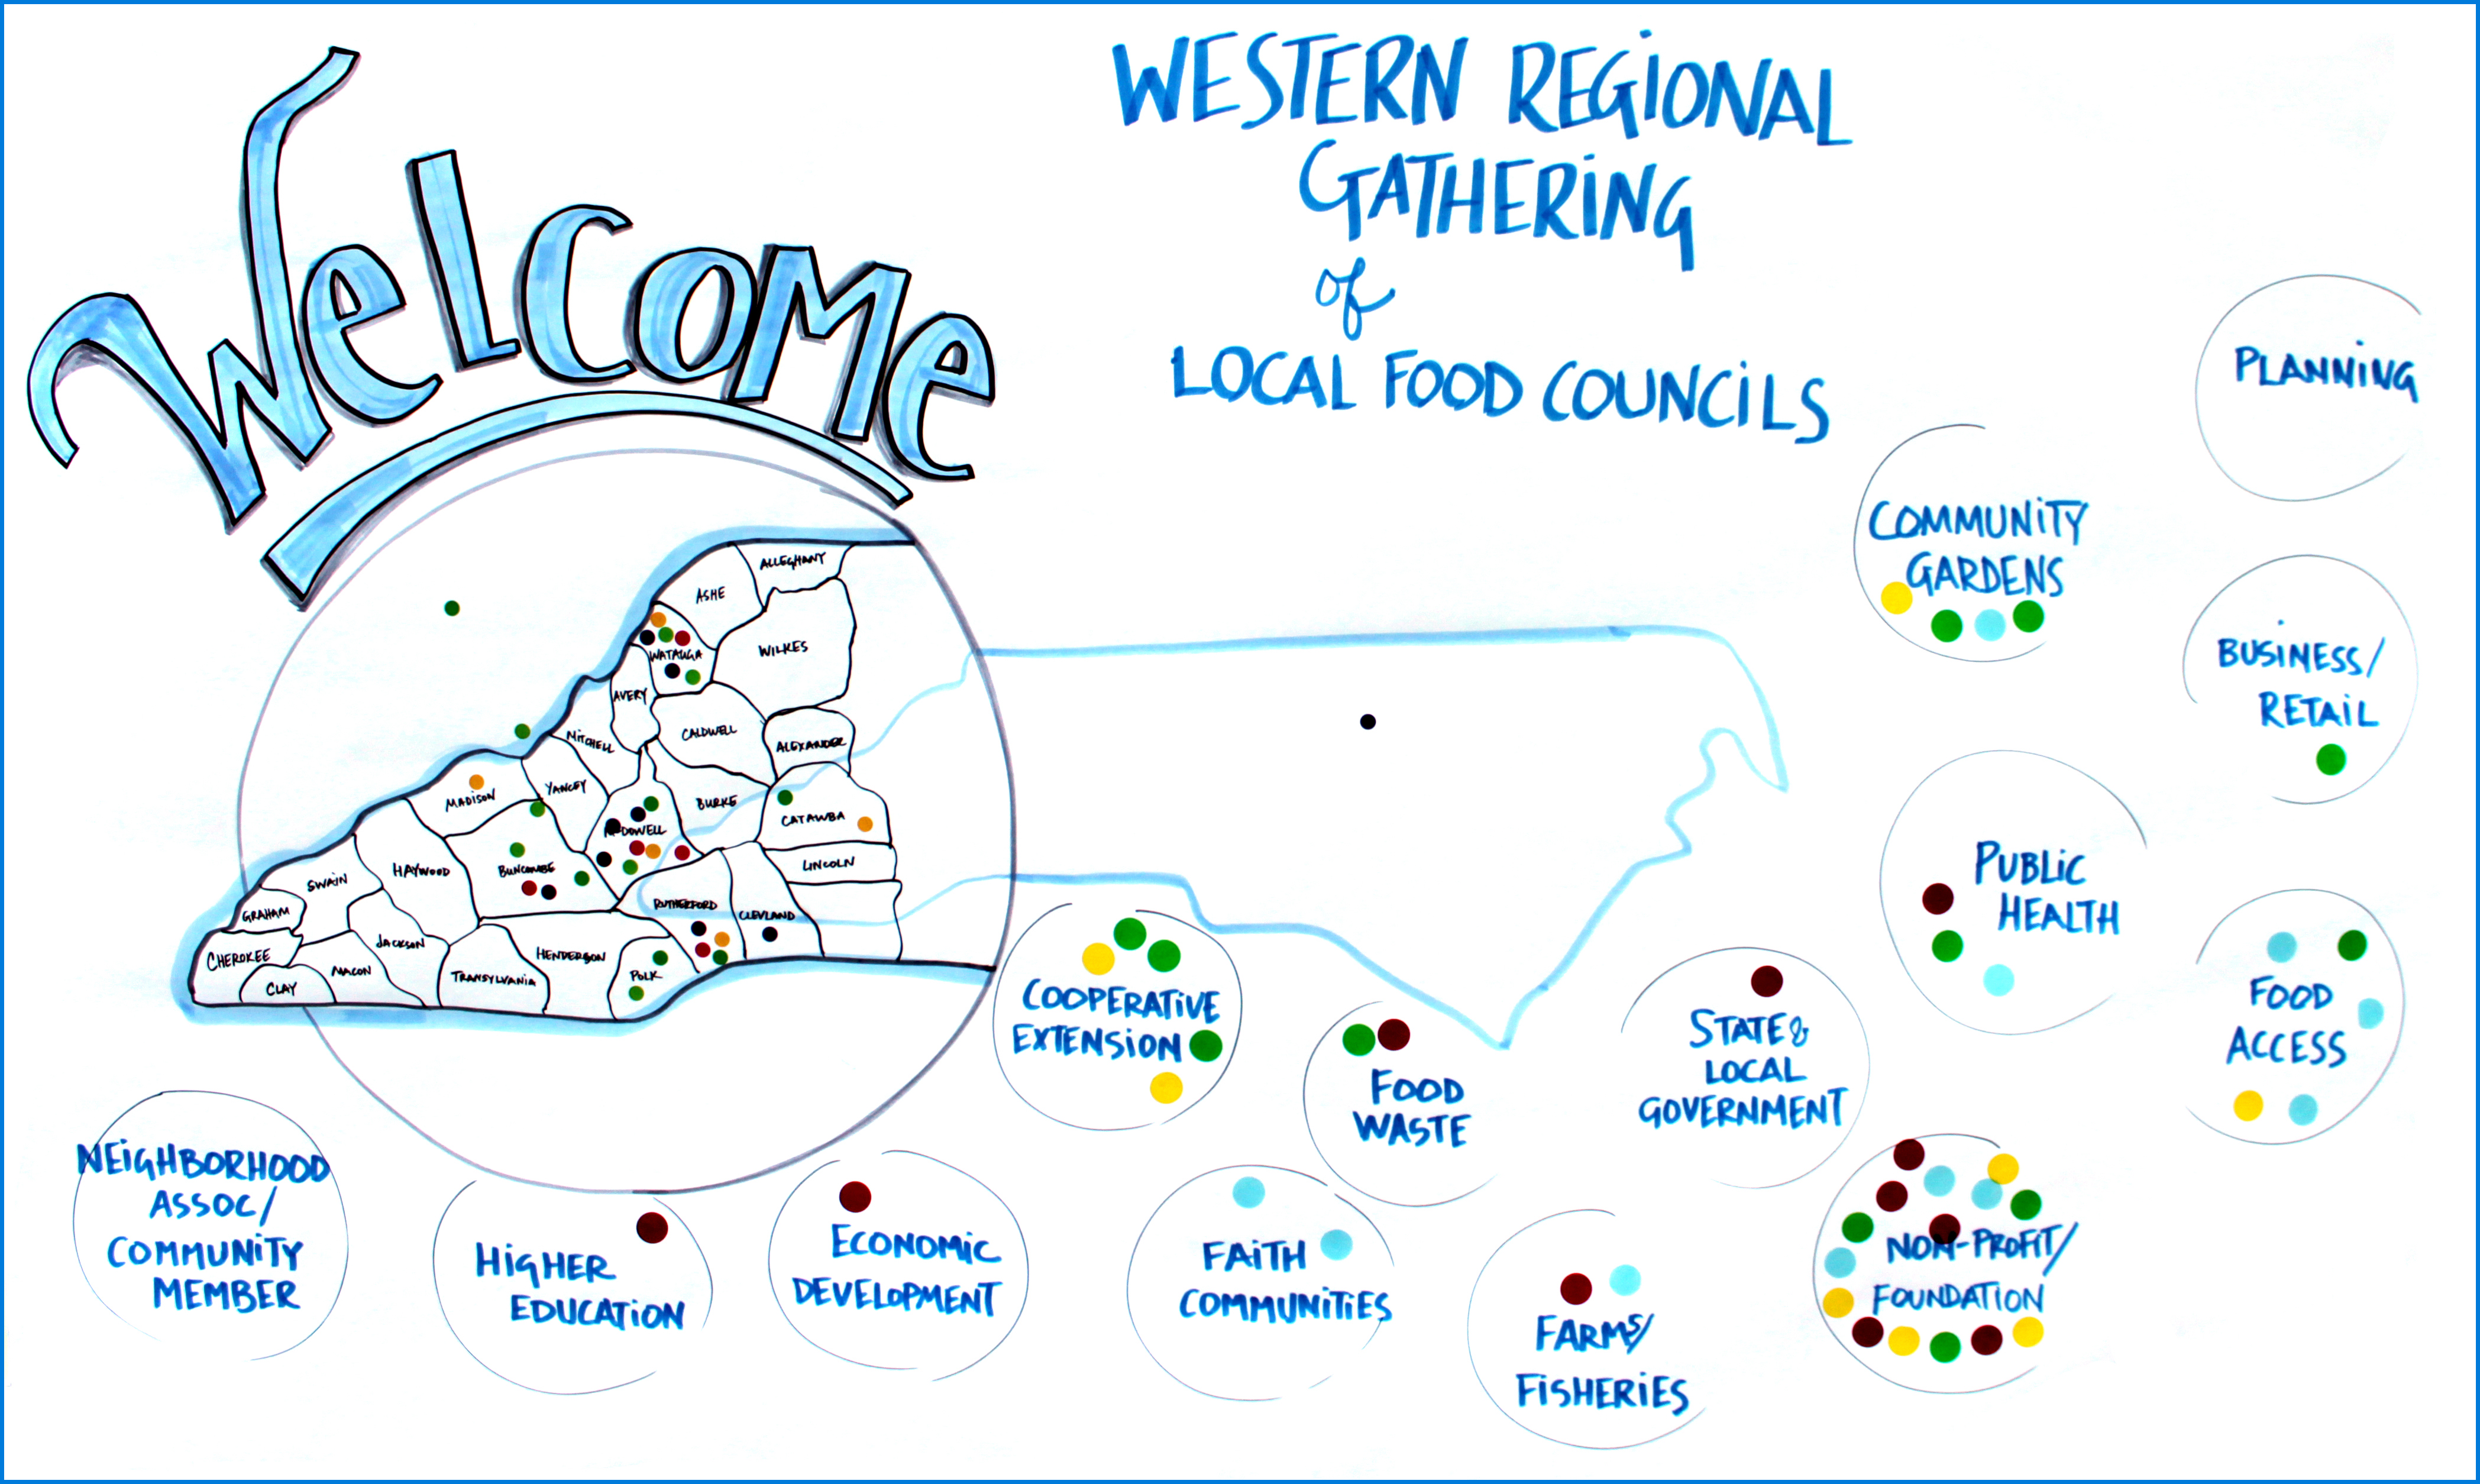 Food Policy & Delicious Food in the West